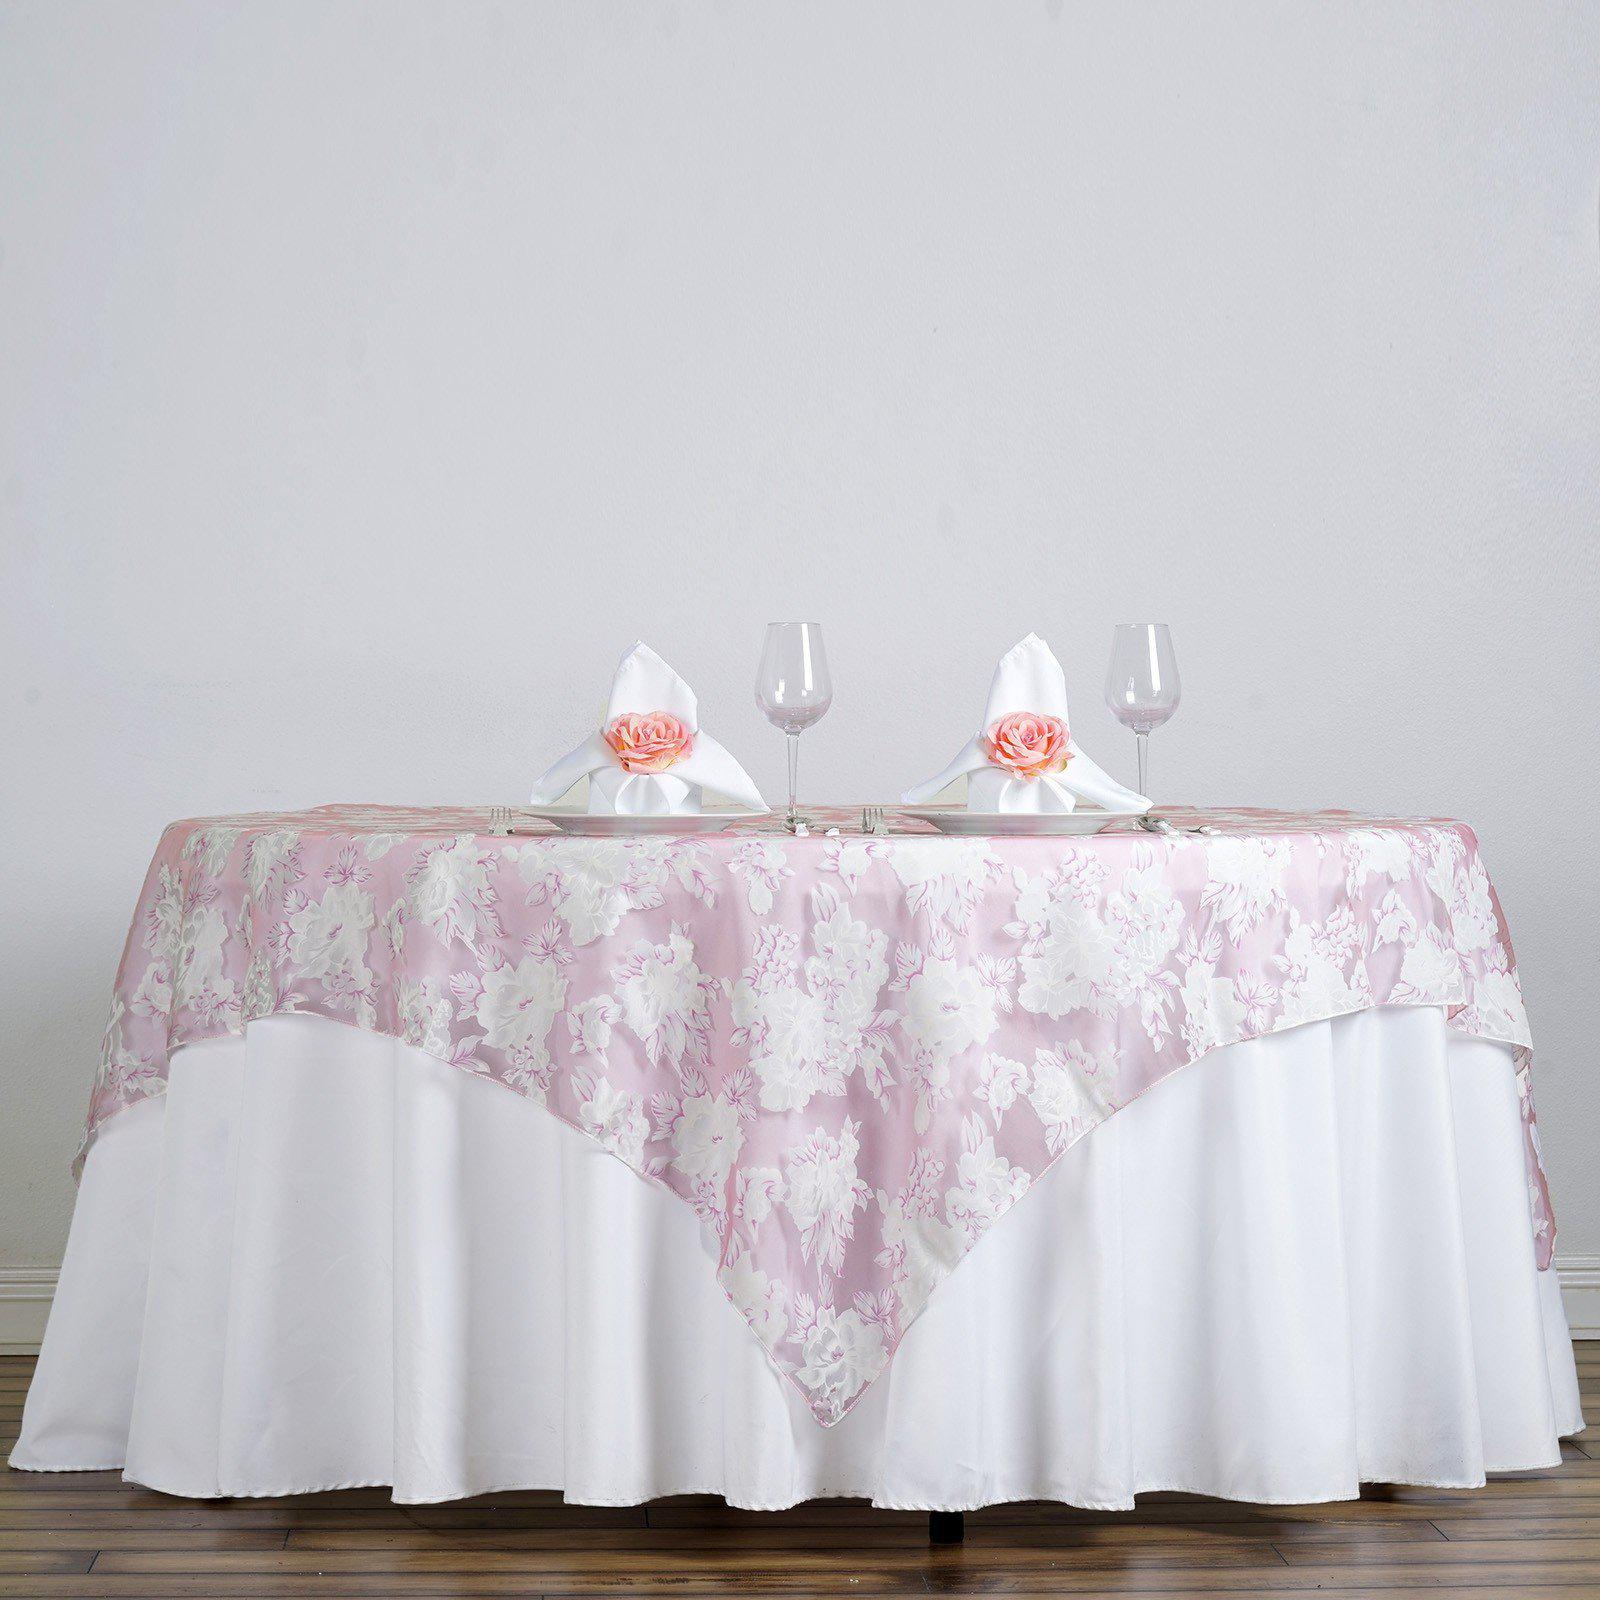 72 X 72 Pink Sheer Organza Overlay With Floral Design